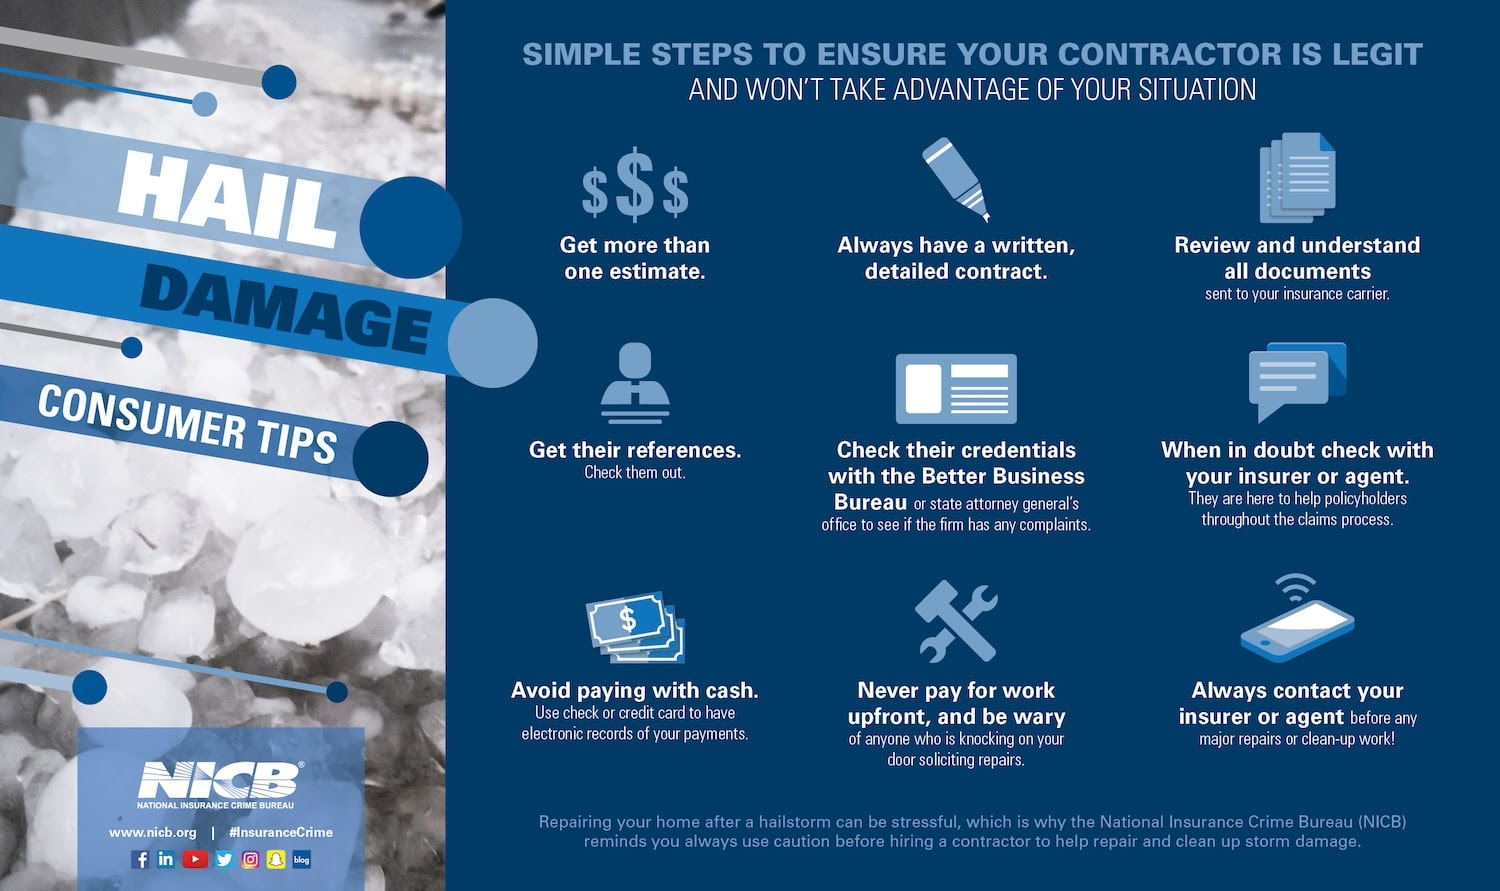 Simple steps to ensure your contractor is legit.